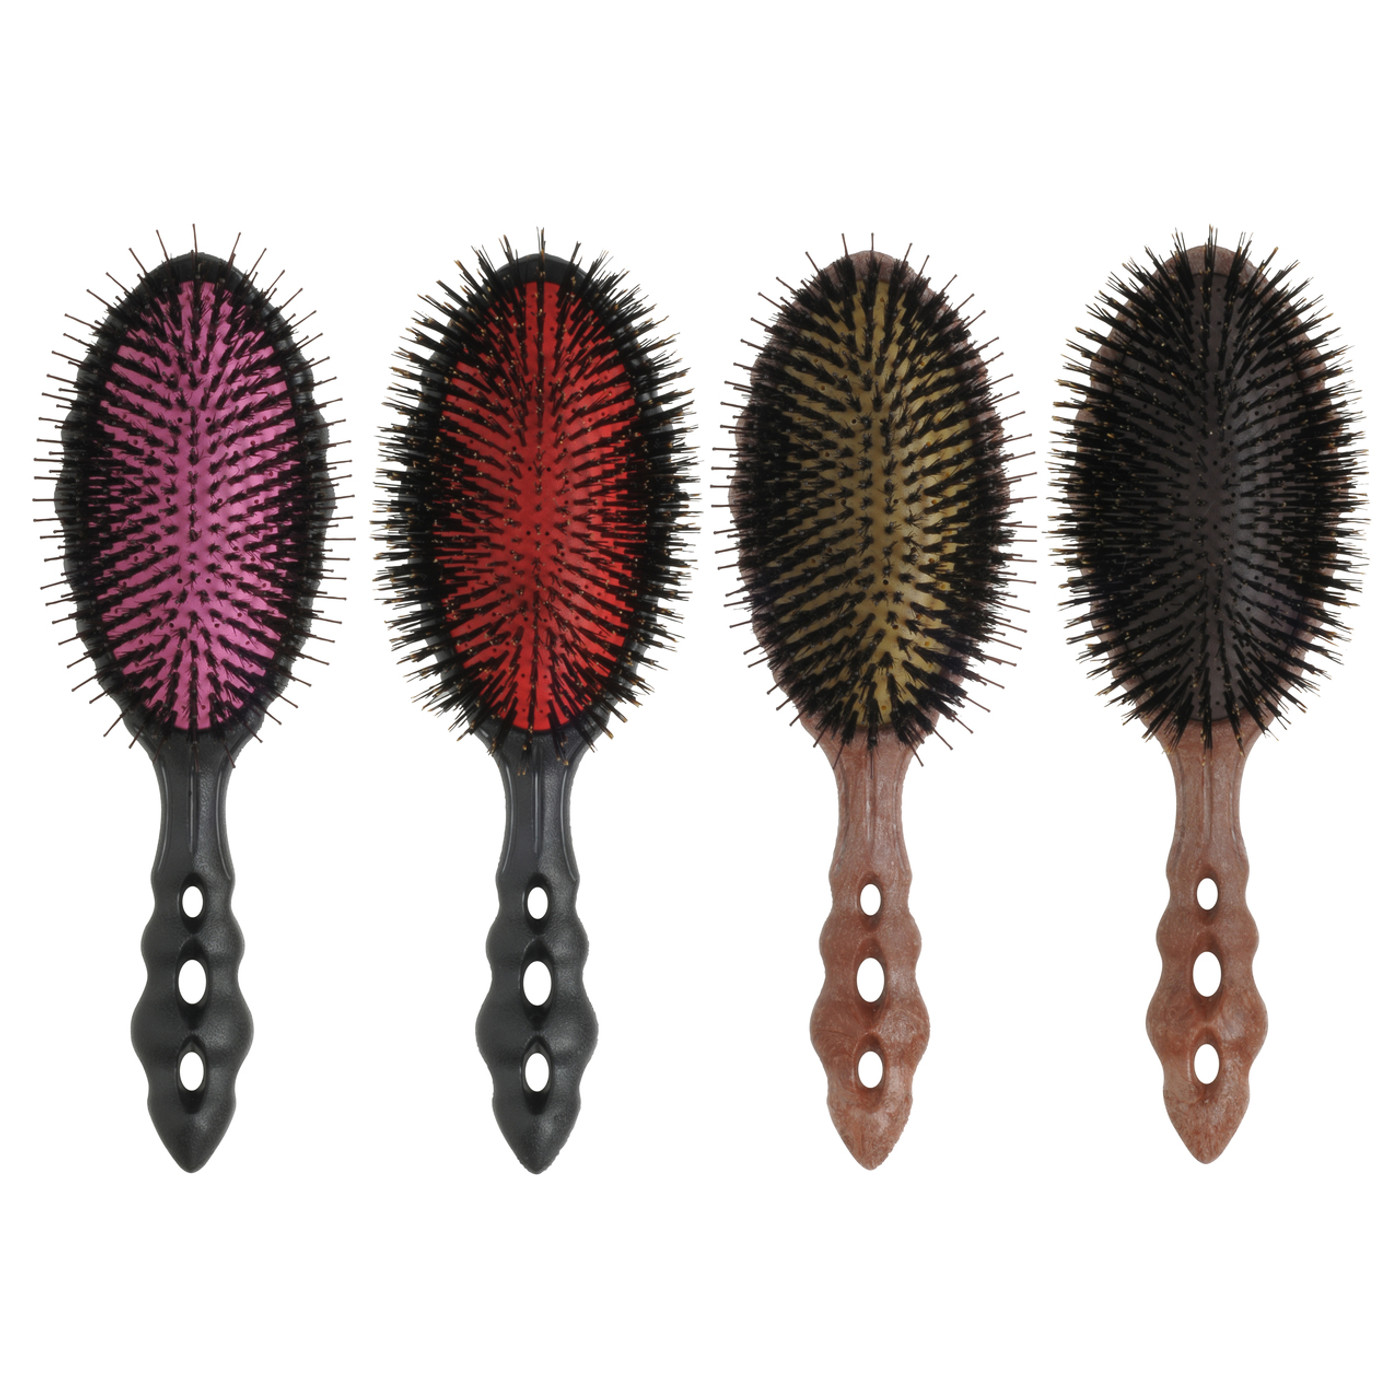 YS Park Beetle Hairbrush Range